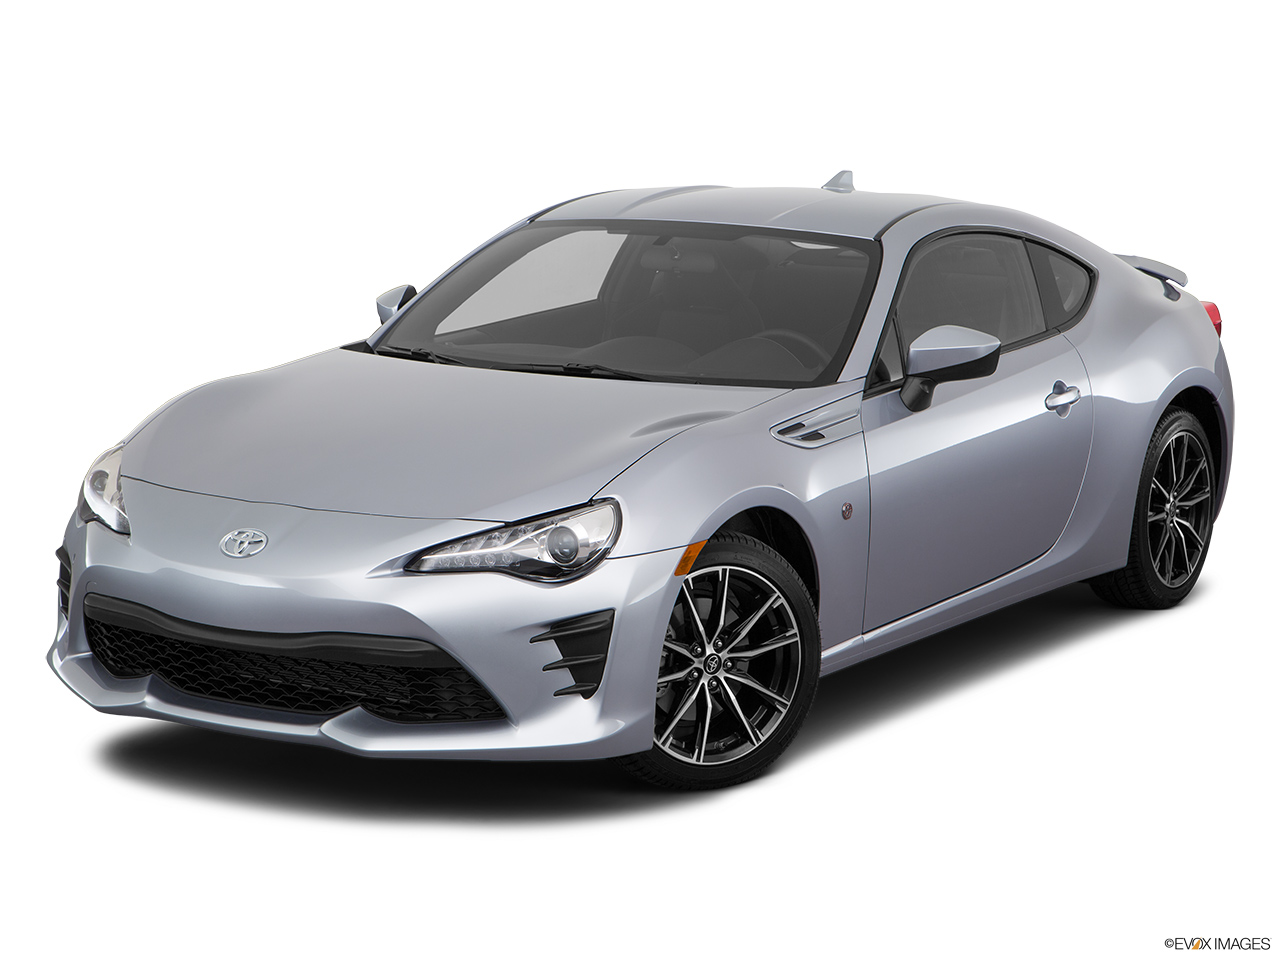 Toyota 86 2018 VTX, United Arab Emirates